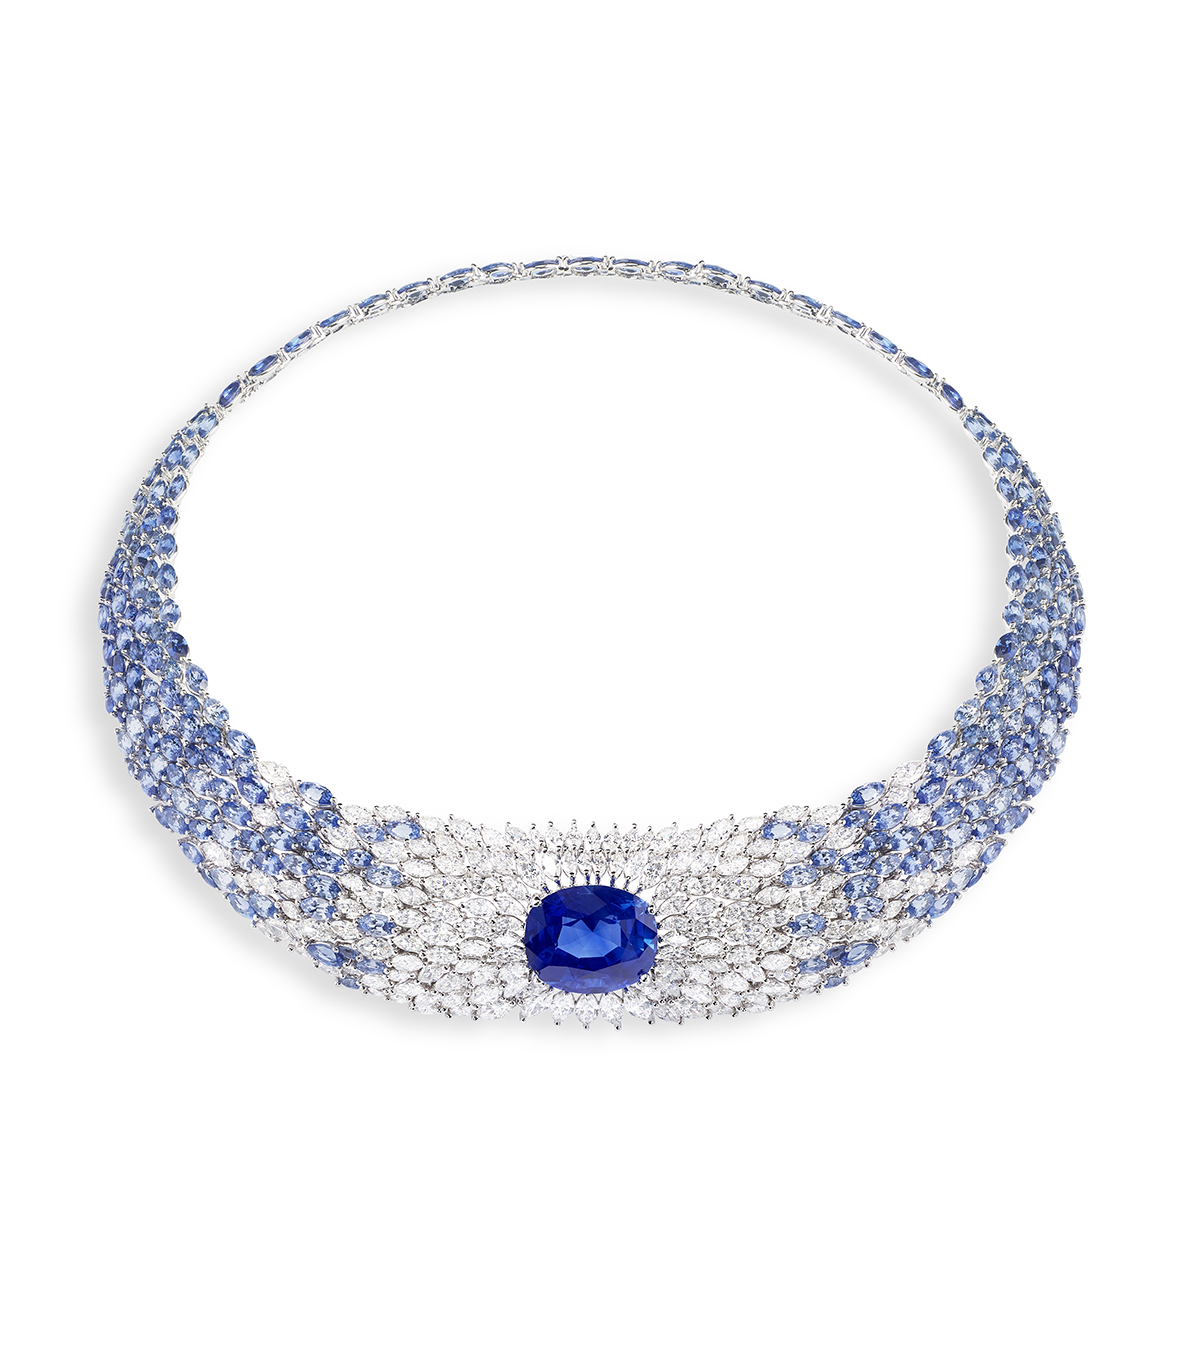 Sea Temptation Necklace. Necklace in 18k white gold set with 1 oval-cut blue sapphire from Ceylon (approx. 22.68 cts), blue sapphires and diamonds.